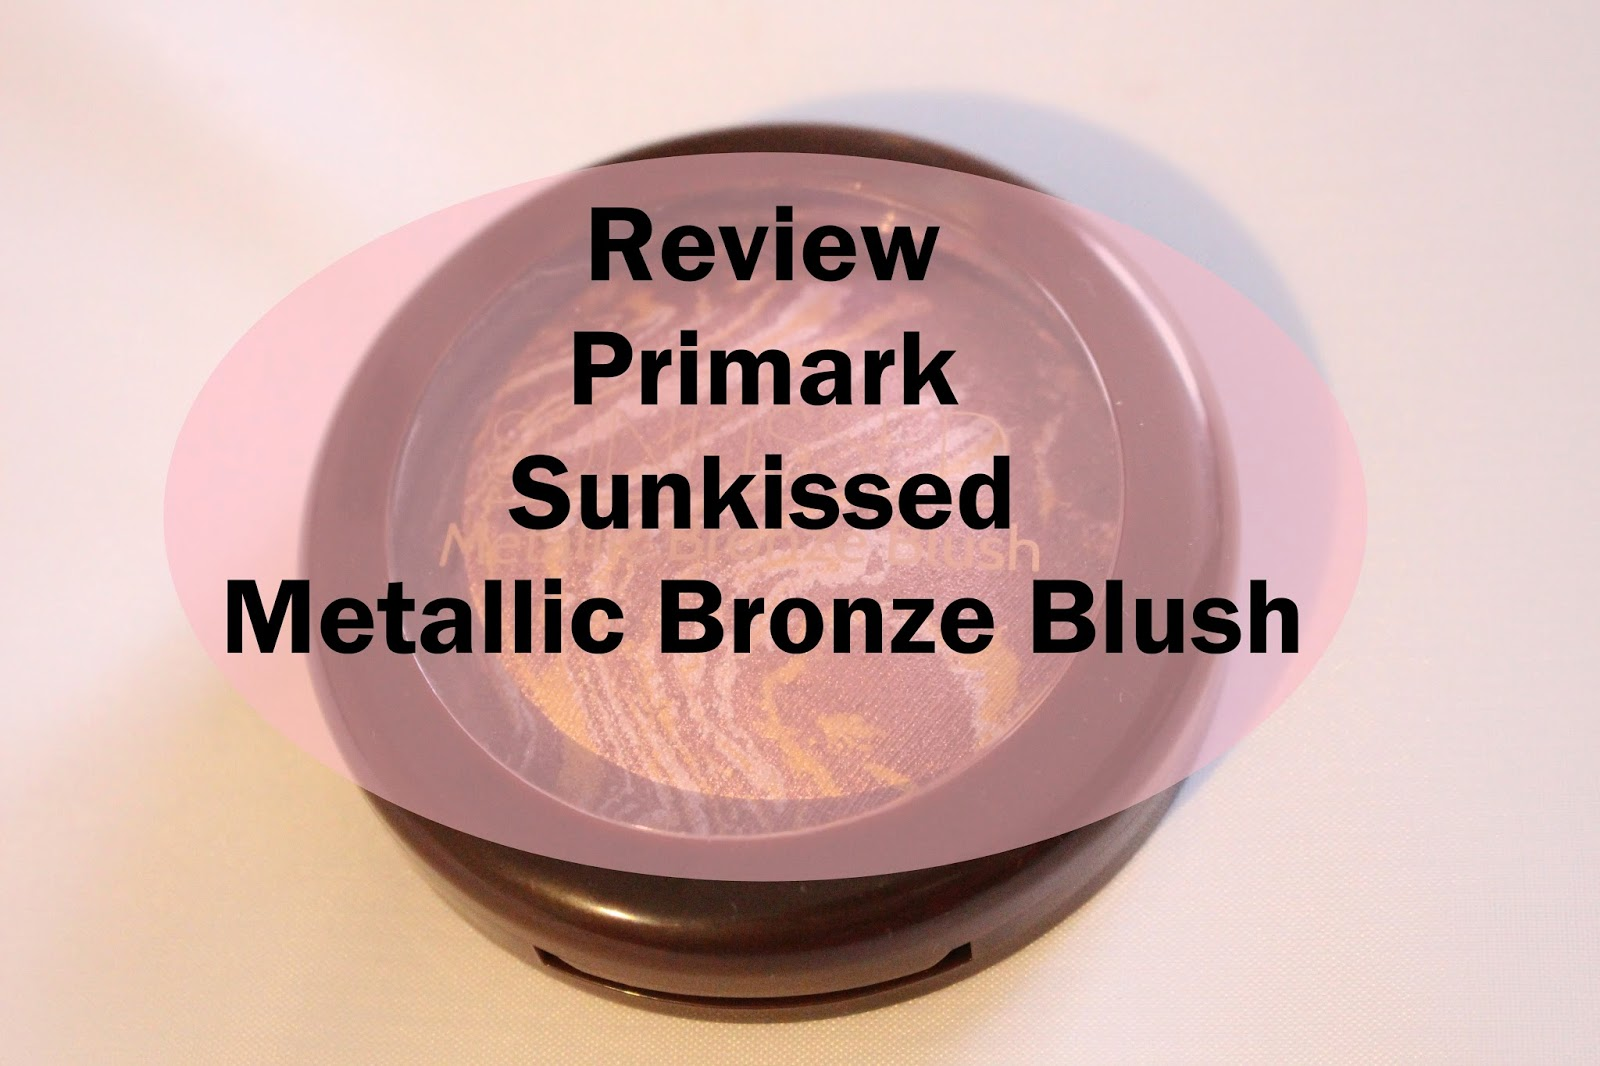 Primark Sunkissed Metallic Bronze Blush